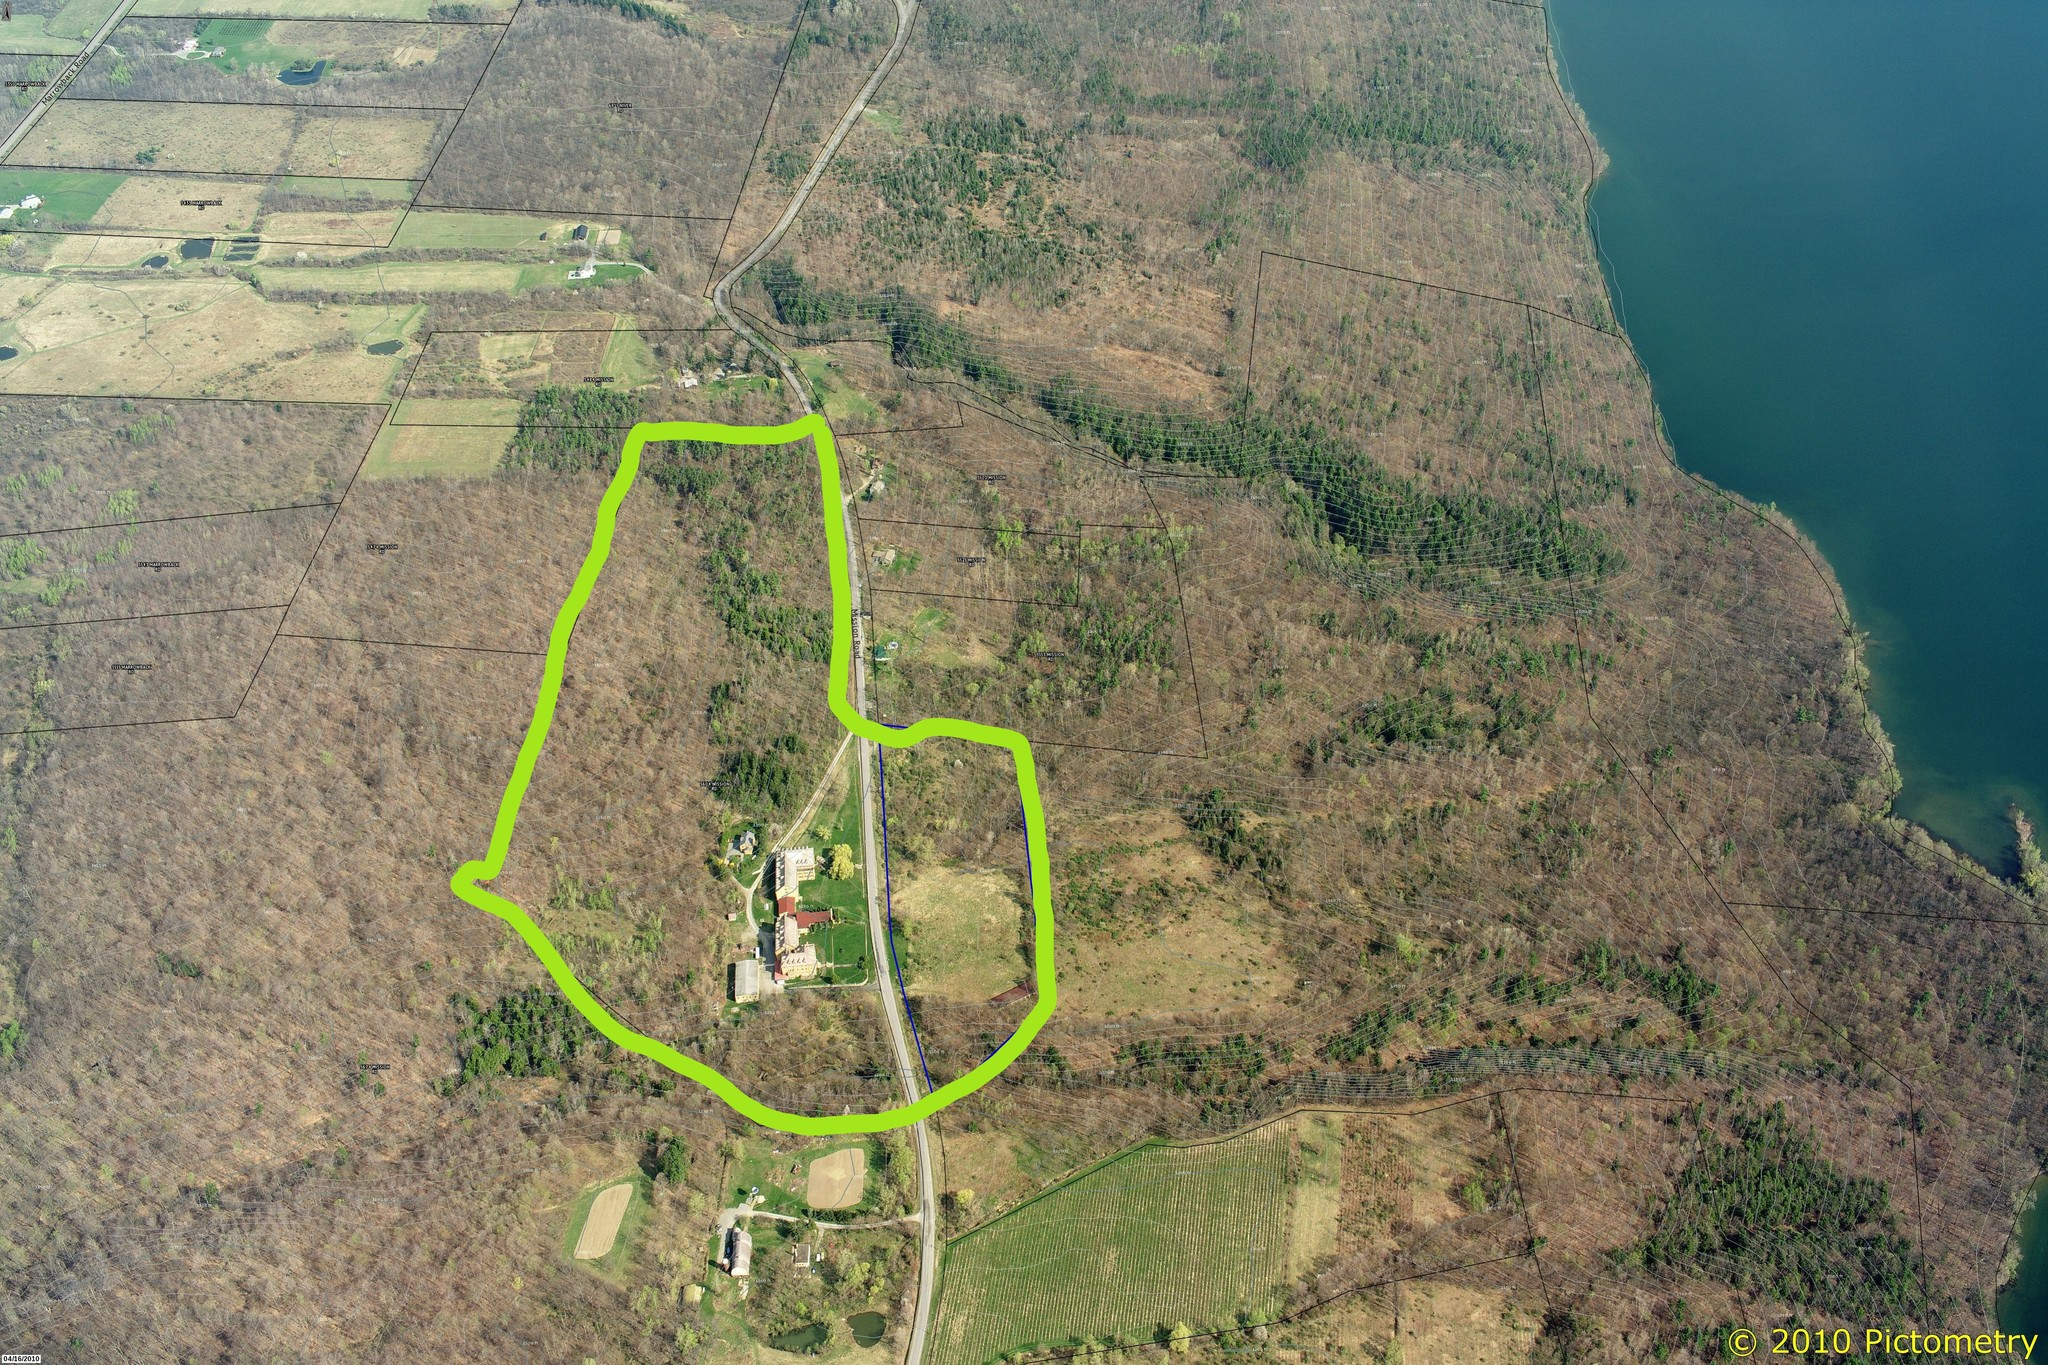 View of St Michael's Seminary and Mission and surrounding areas including Hemlock Lake, a finger Lake